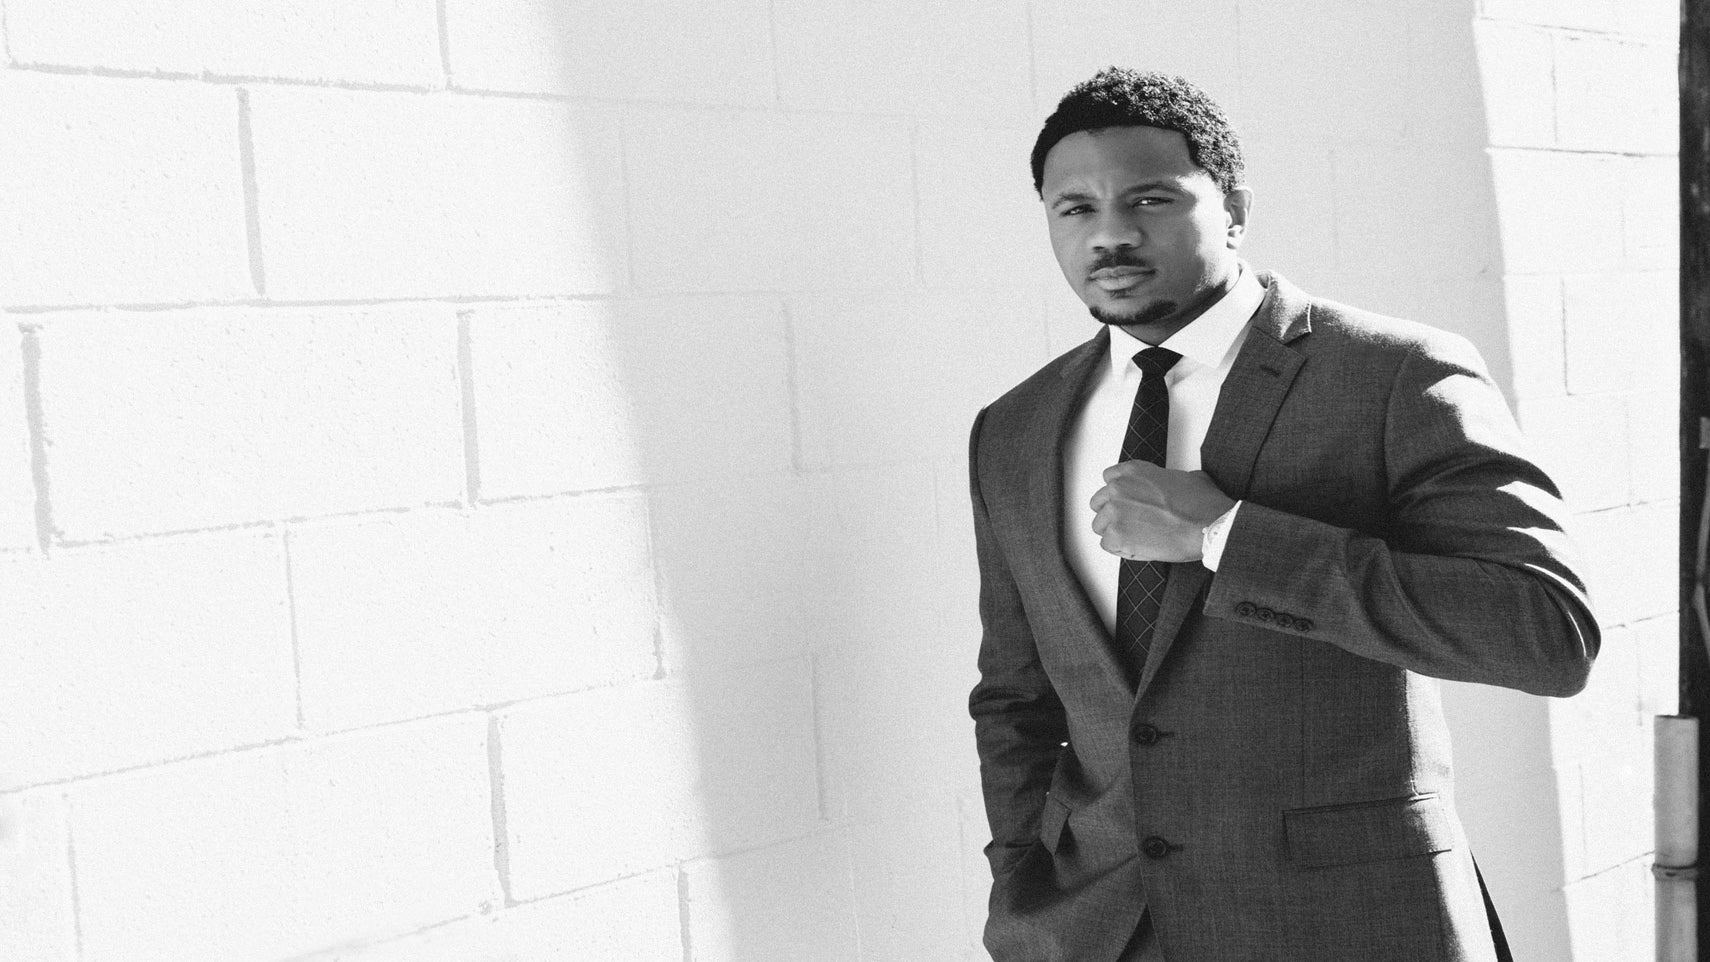 Hosea Chanchez on 'The Game', Life Without Melanie and Derwin, and Thoughts on Marriage